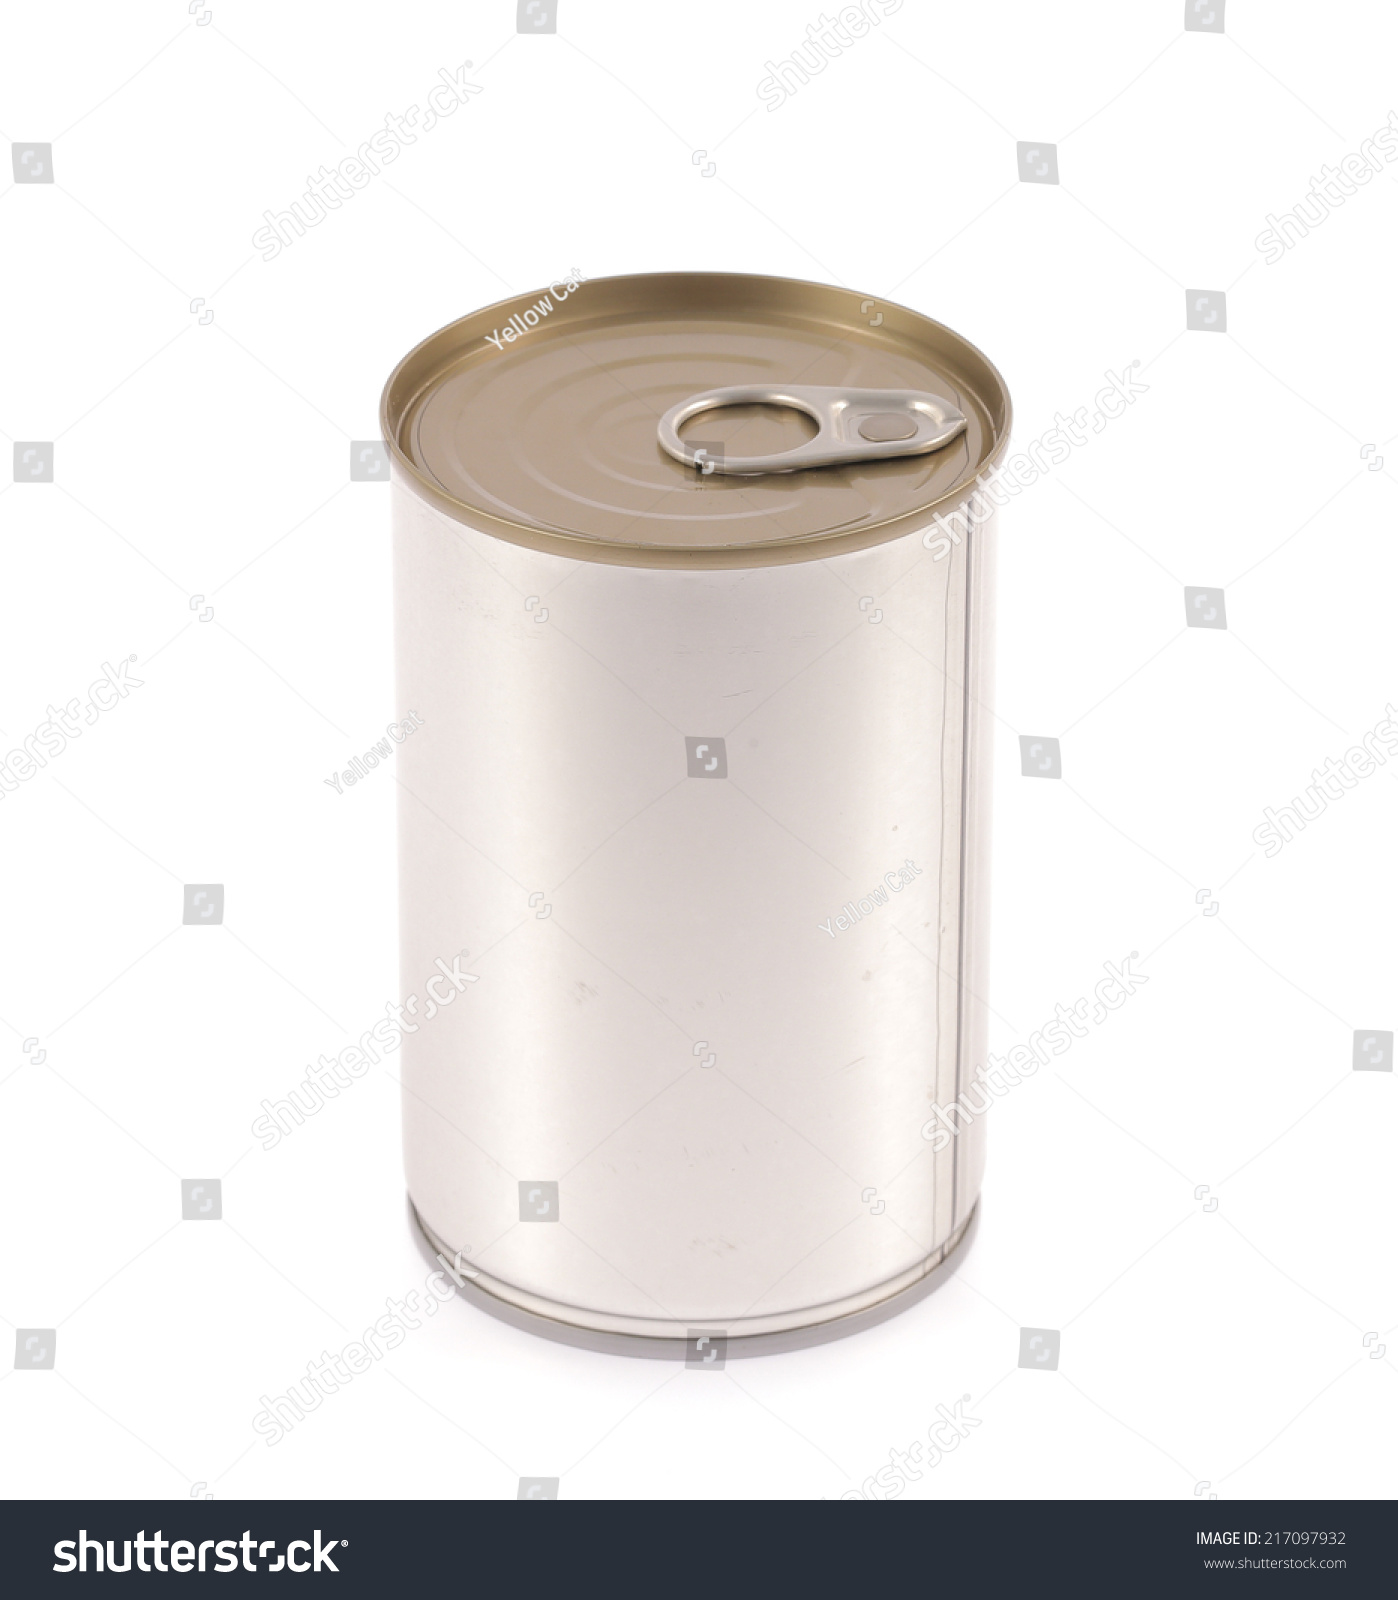 Aluminum canned food isolated on white background stock for Aluminum cuisine